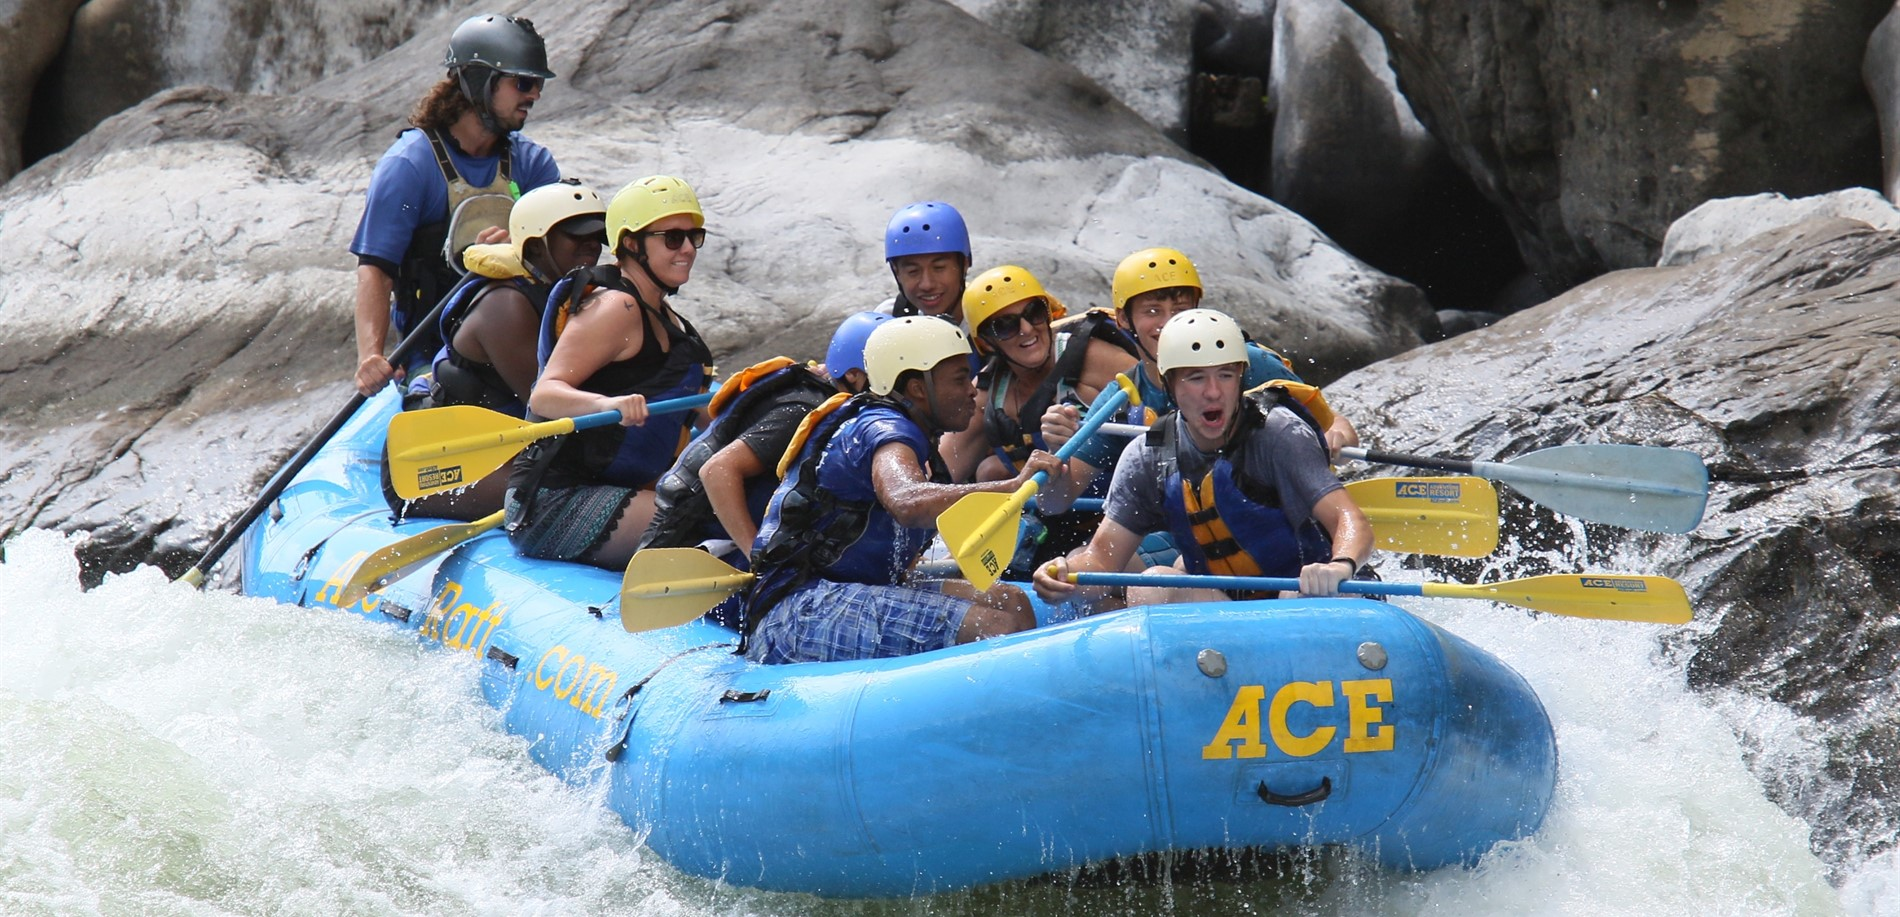 NHHS JROTC senior leaders learned team building skills while whitewater rafting.